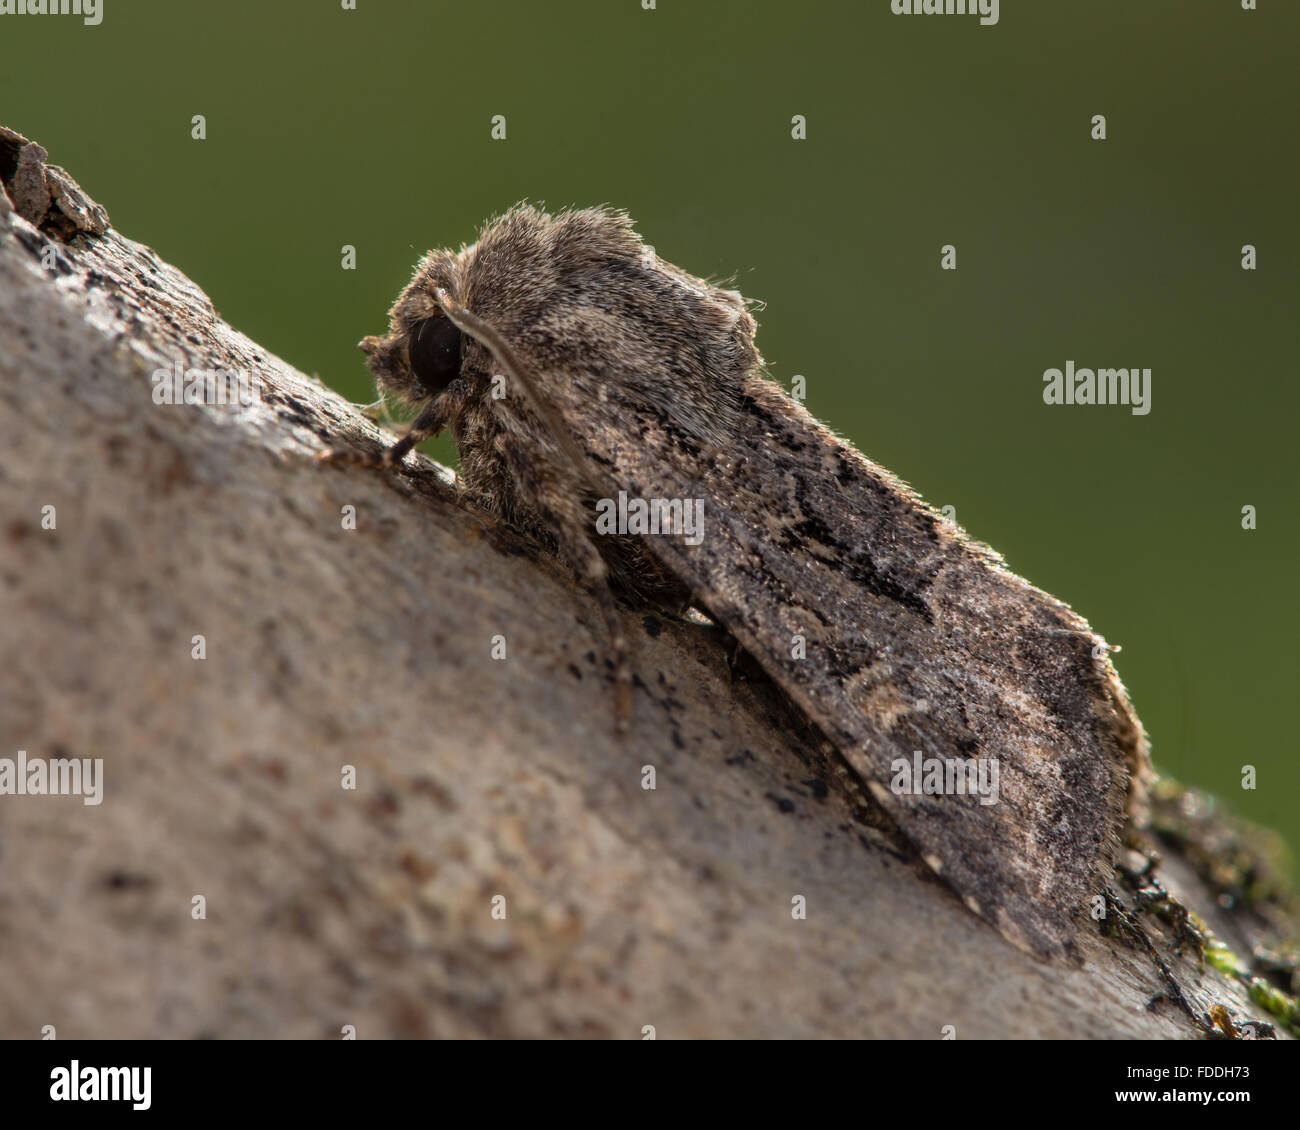 Flounced rustic (Luperina testacea) moth. An autumnal moth in the family Noctuidae, seen in profile at rest - Stock Image